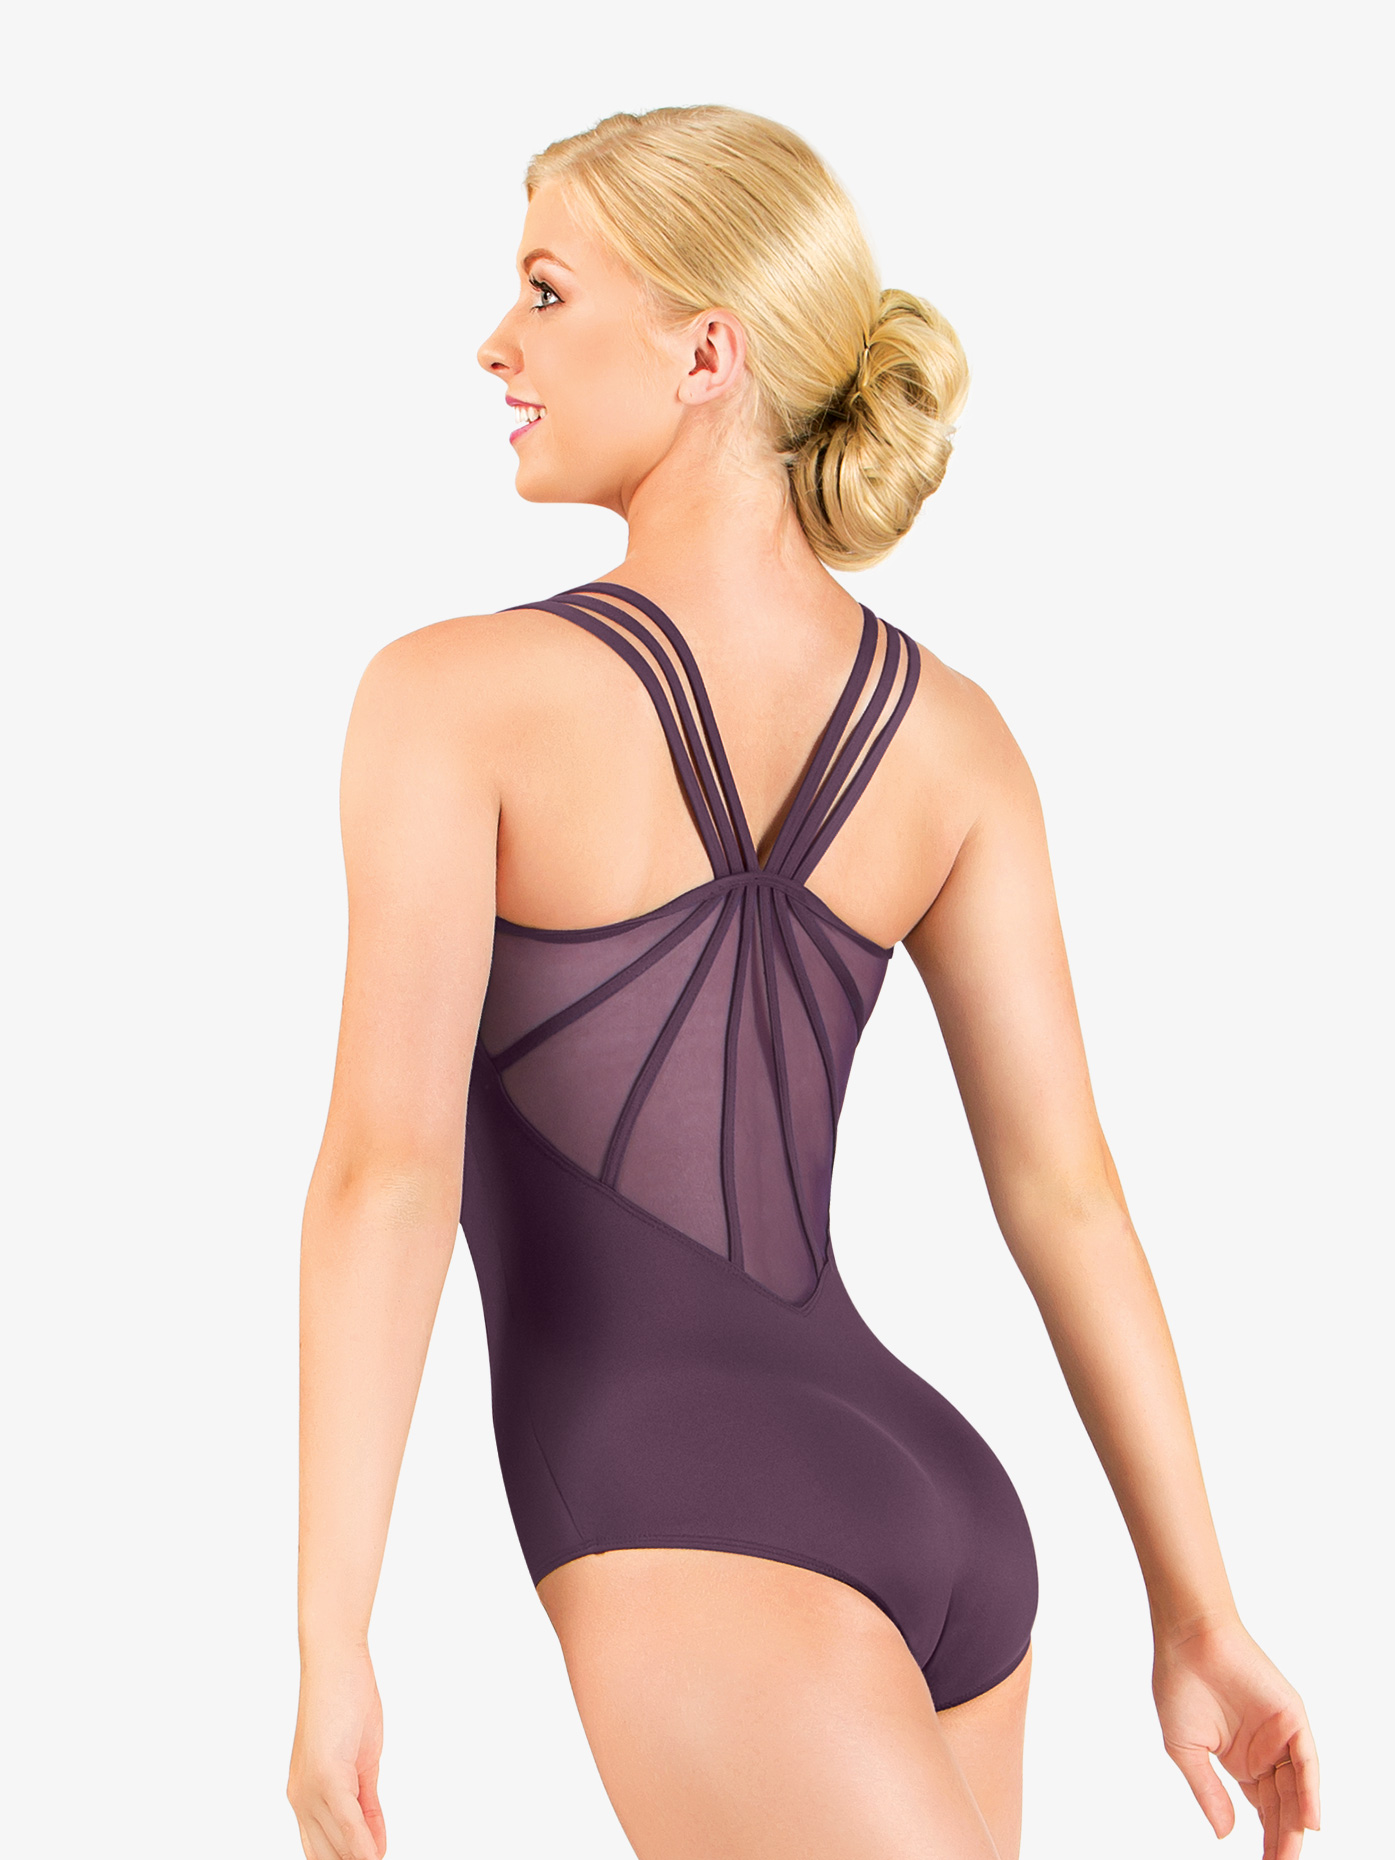 Natalie Couture Adult Microfiber Strappy Back Camisole Leotard NC8810